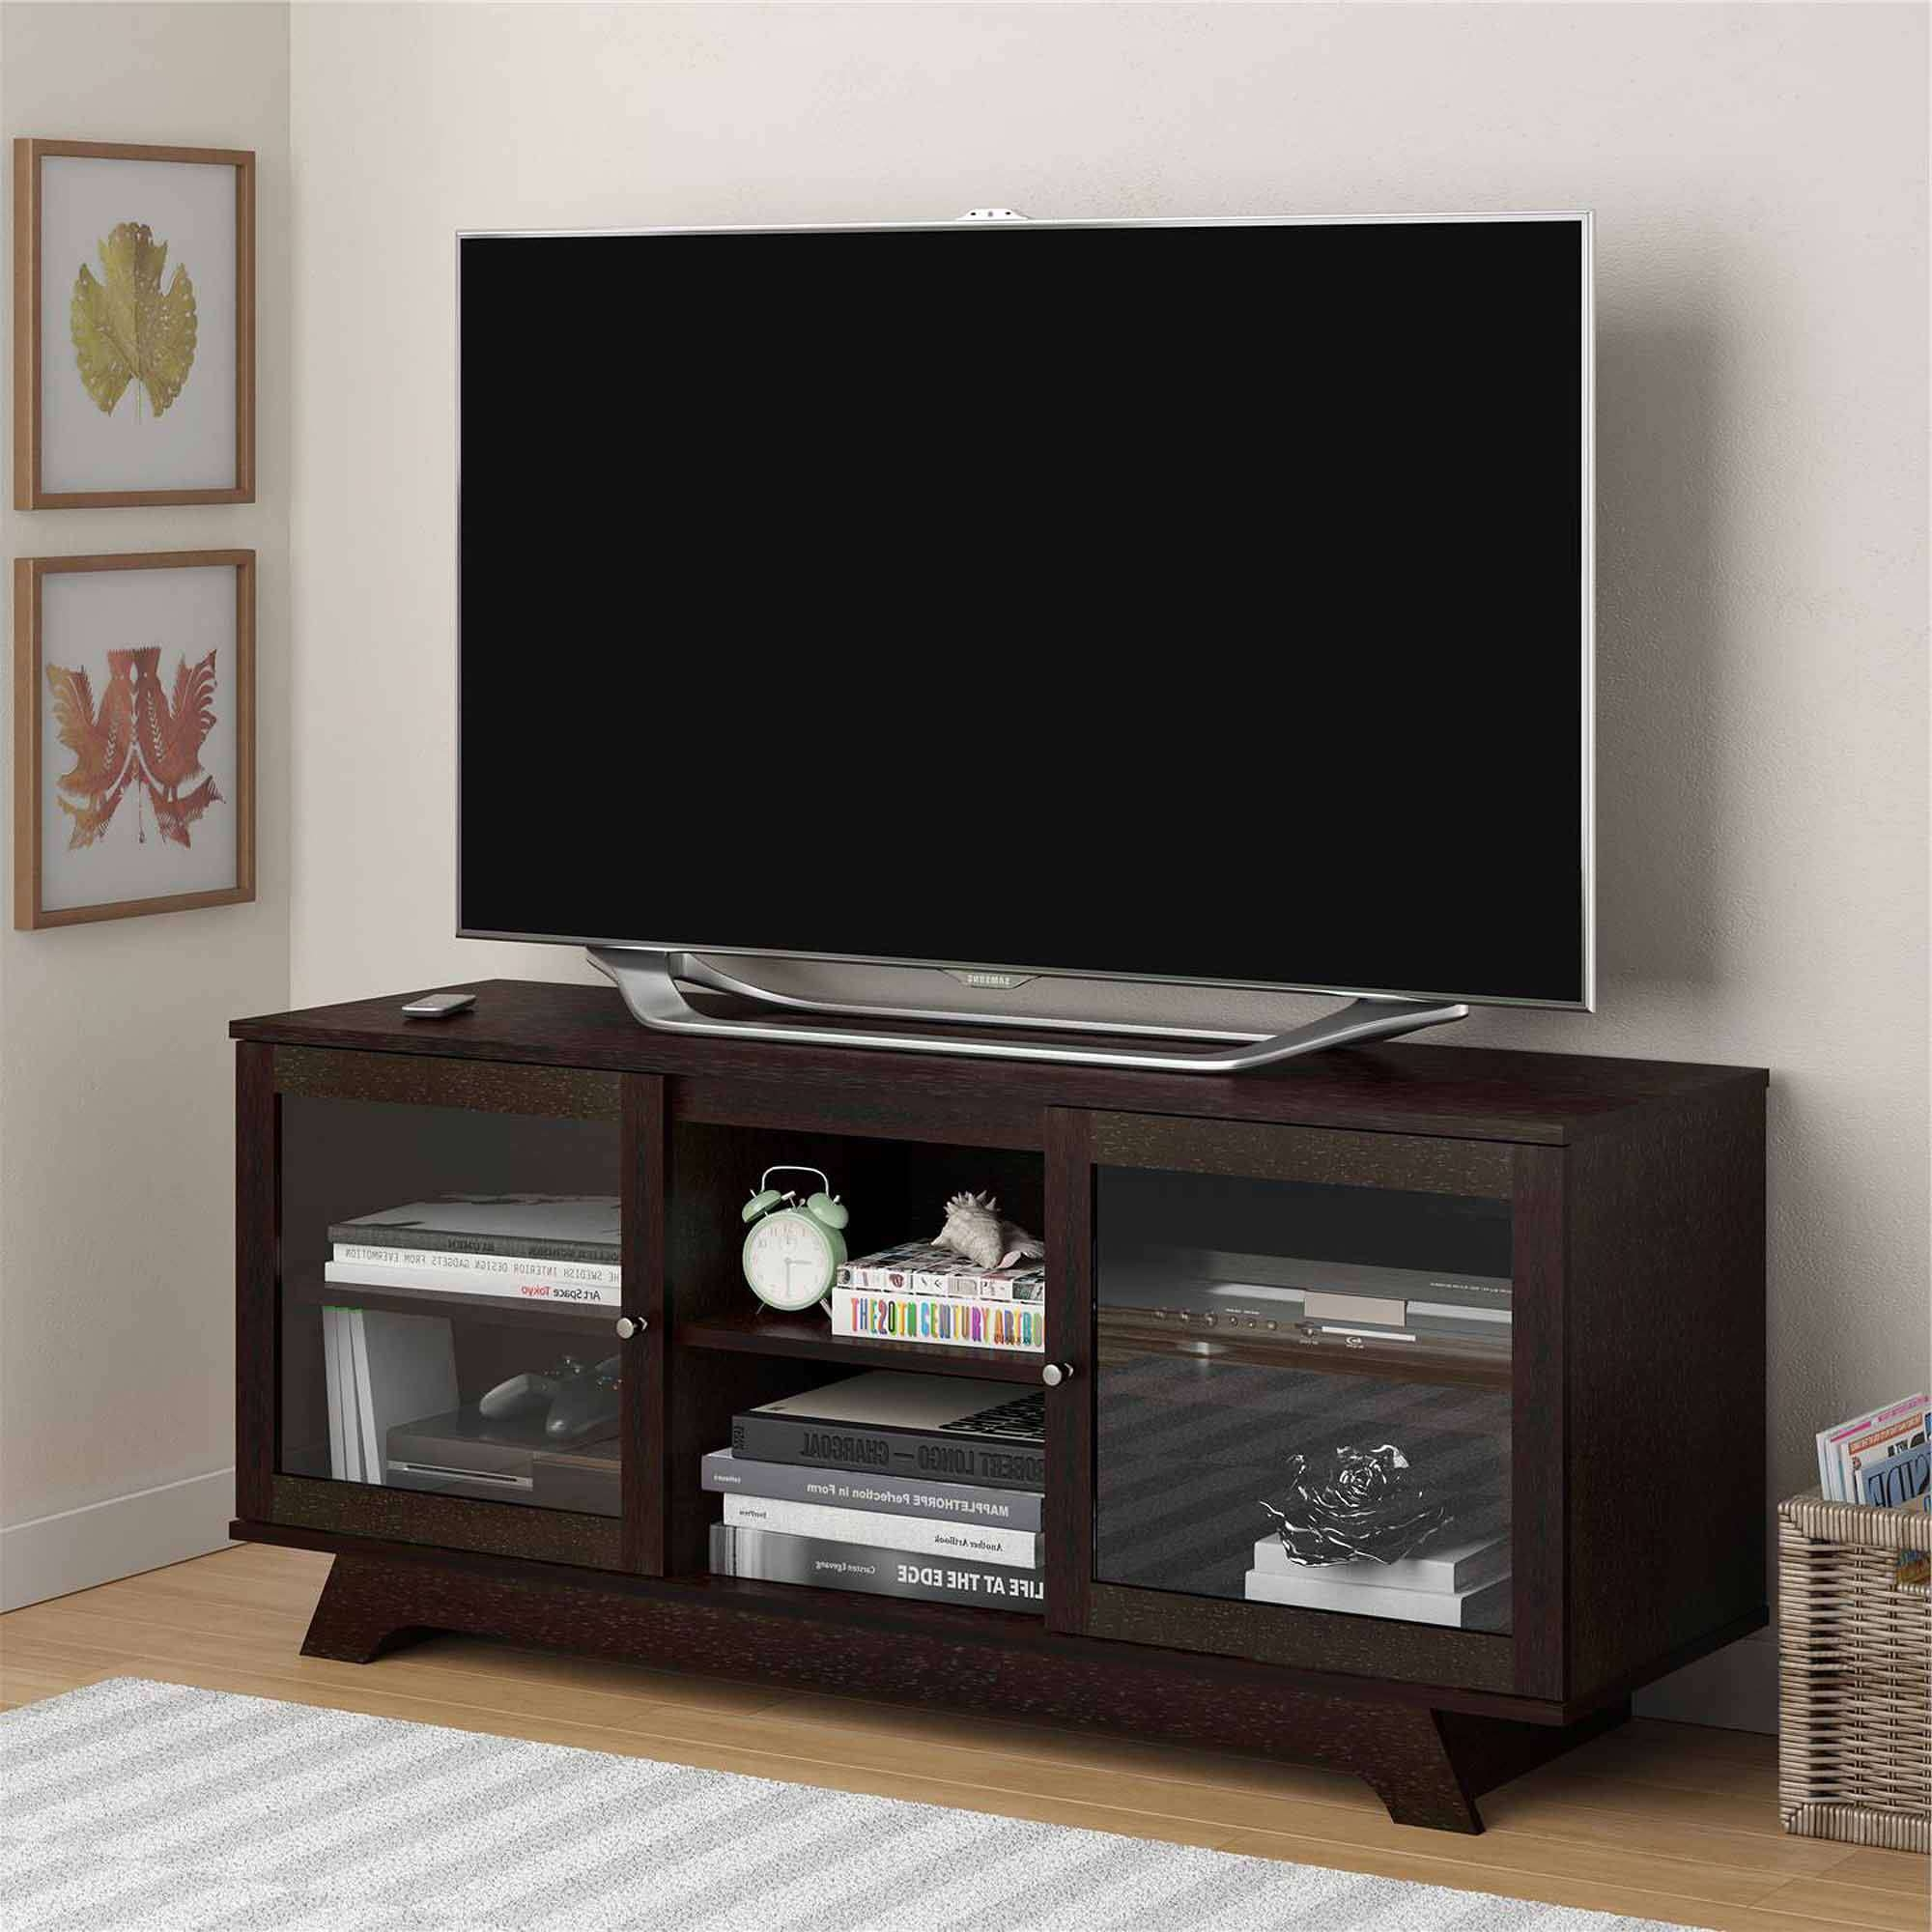 Tv Stands & Entertainment Centers – Walmart For Entertainment Center Tv Stands (View 7 of 15)